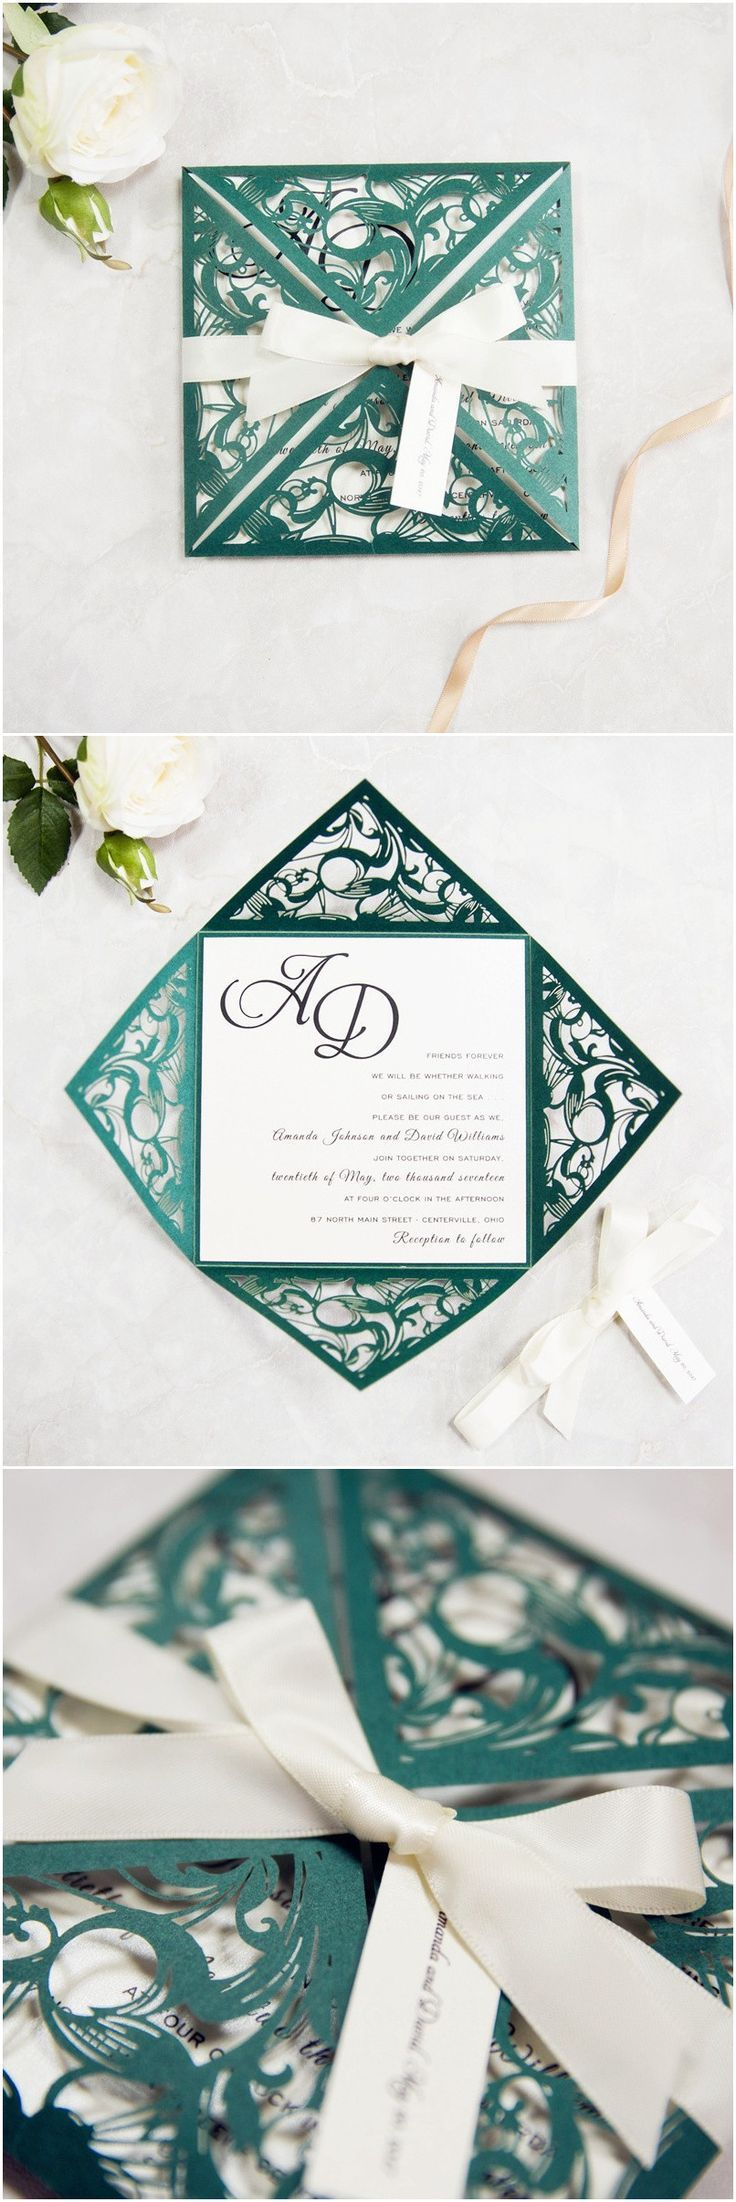 958 best Wedding invitations images on Pinterest | Invitations ...